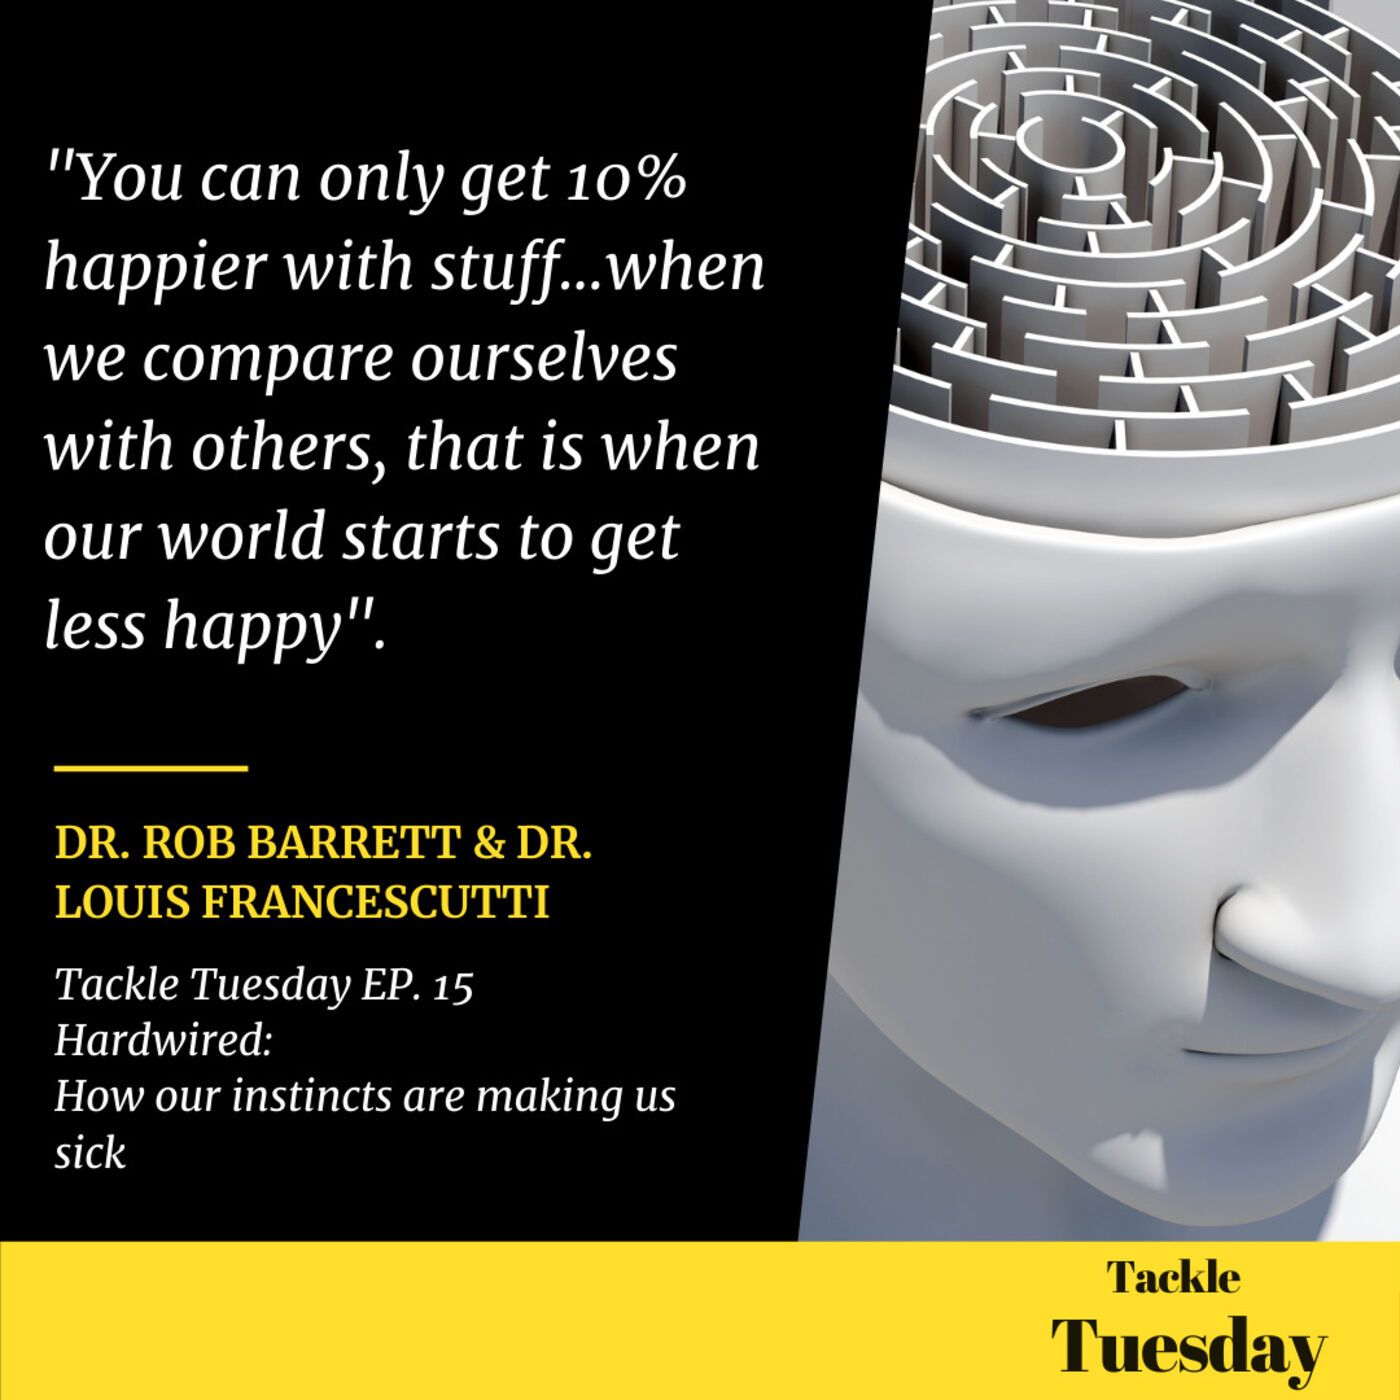 Ep. 15 Hardwired: How Our Instincts to be Healthy are Making Us Sick